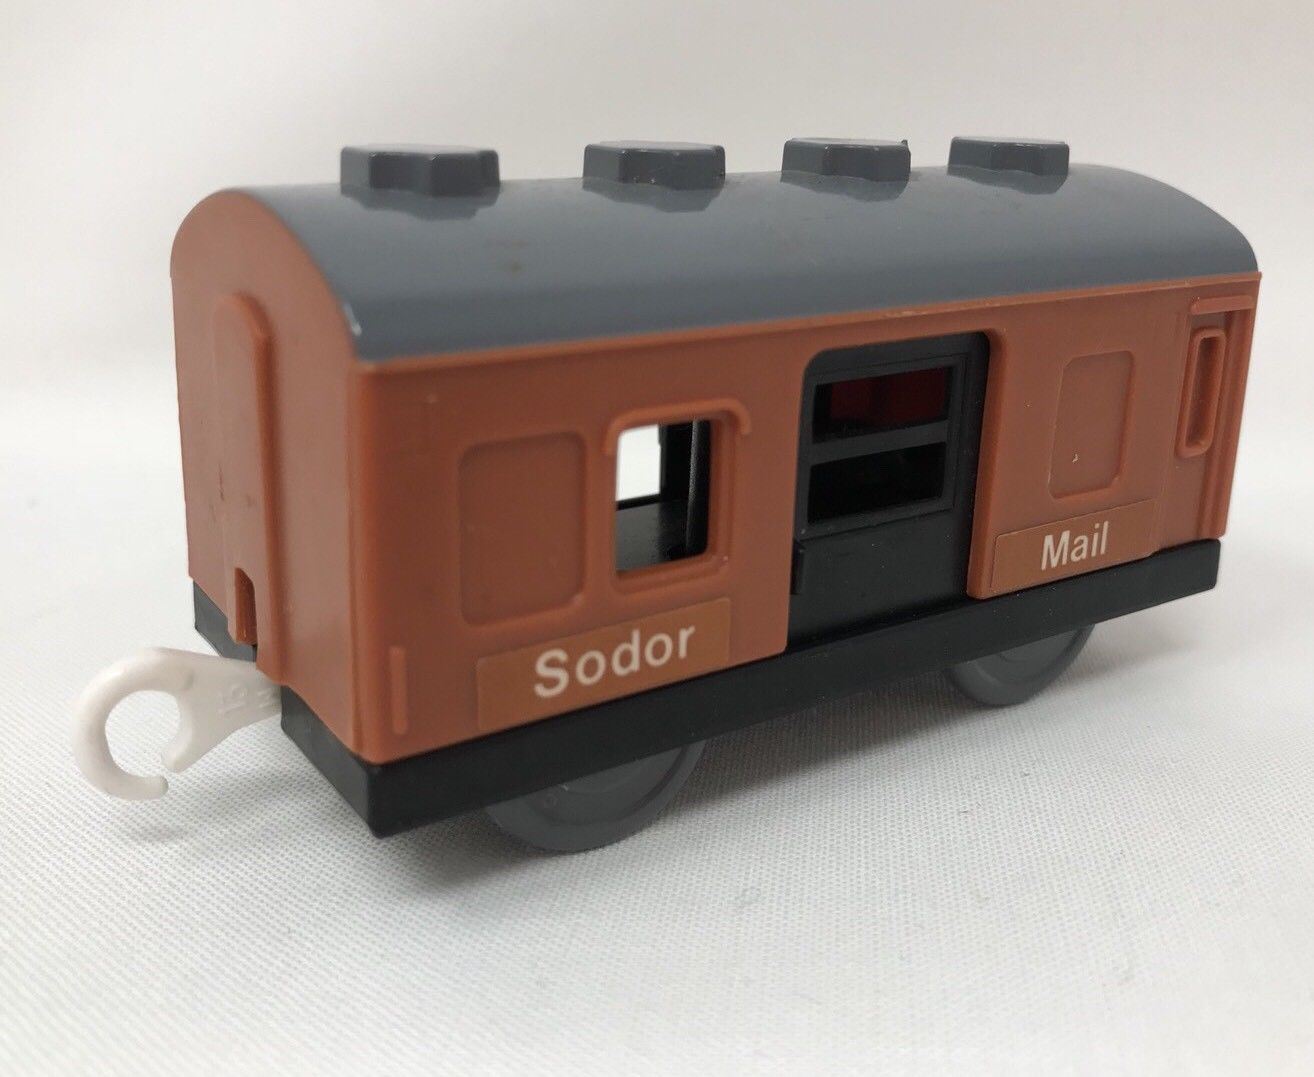 Sodor Mail Car | Thomas and Friends TrackMaster Wiki | FANDOM ...